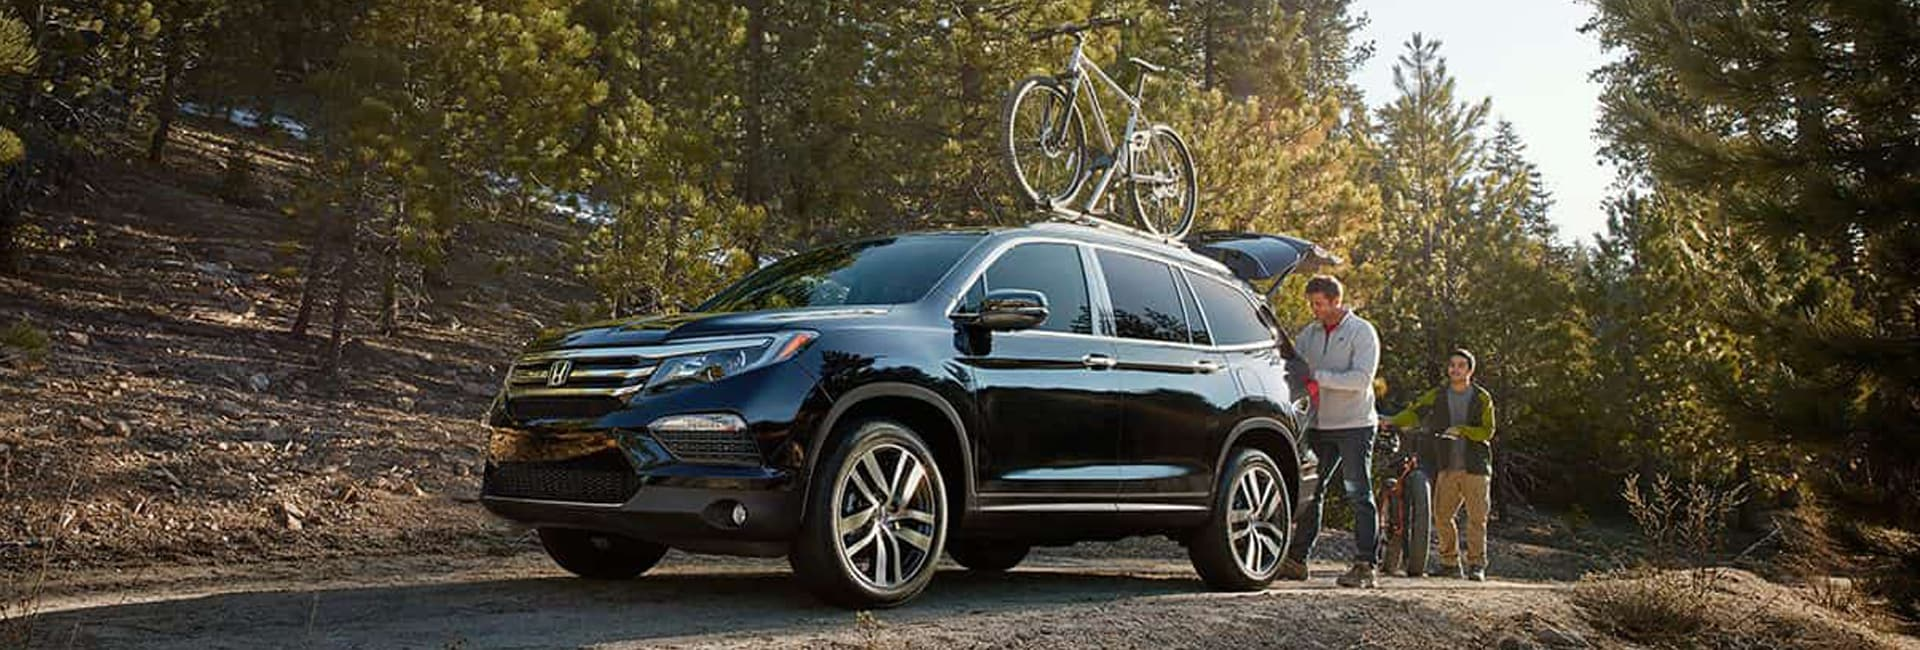 2018 Honda Pilot Exterior Features